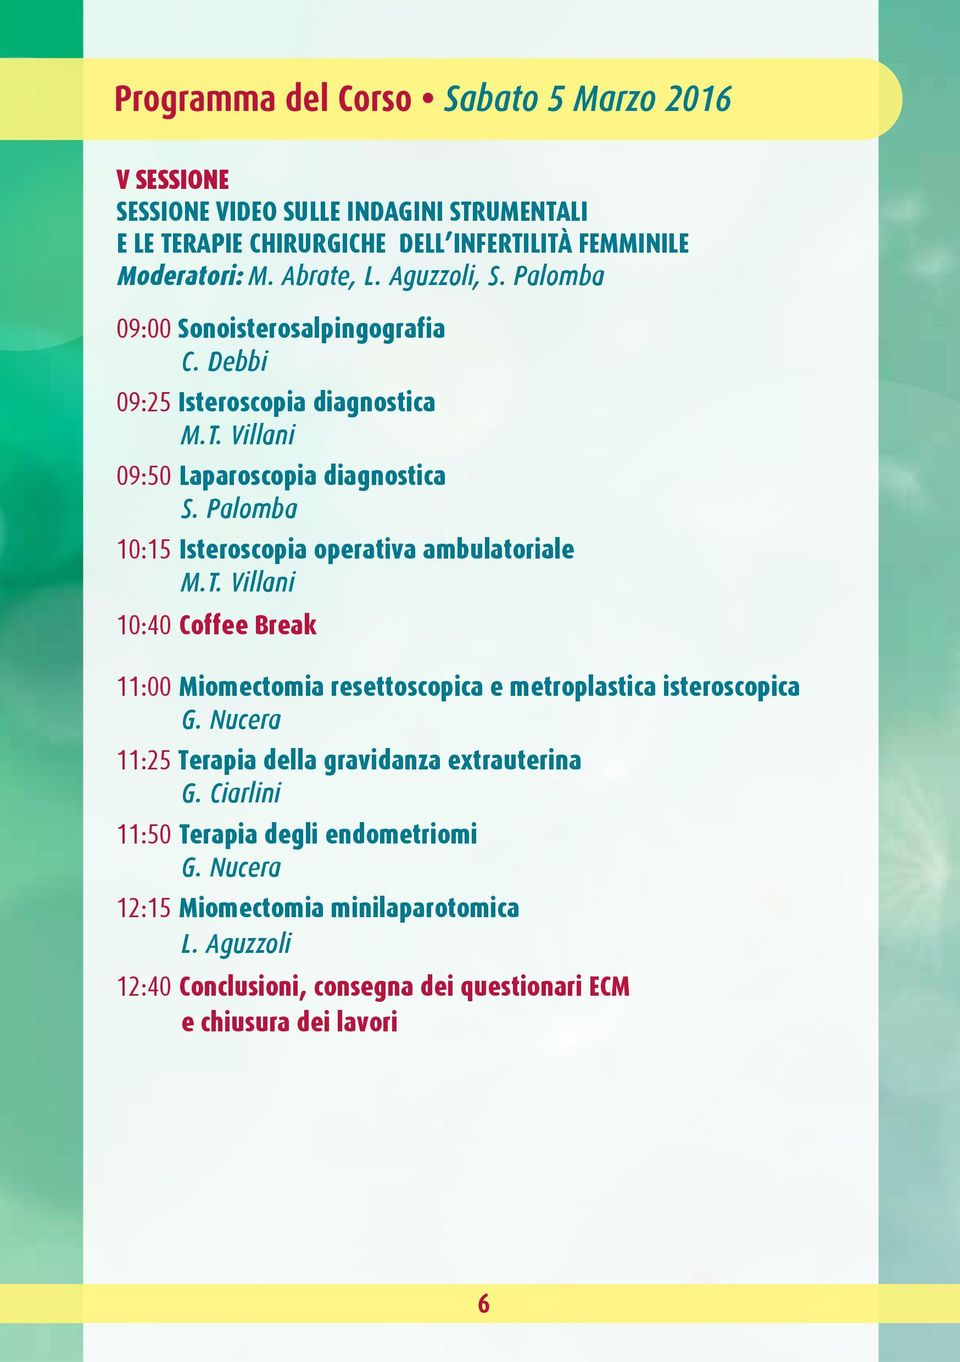 Debbi 09:25 Isteroscopia diagnostica 09:50 Laparoscopia diagnostica 10:15 Isteroscopia operativa ambulatoriale 10:40 Coffee Break 11:00